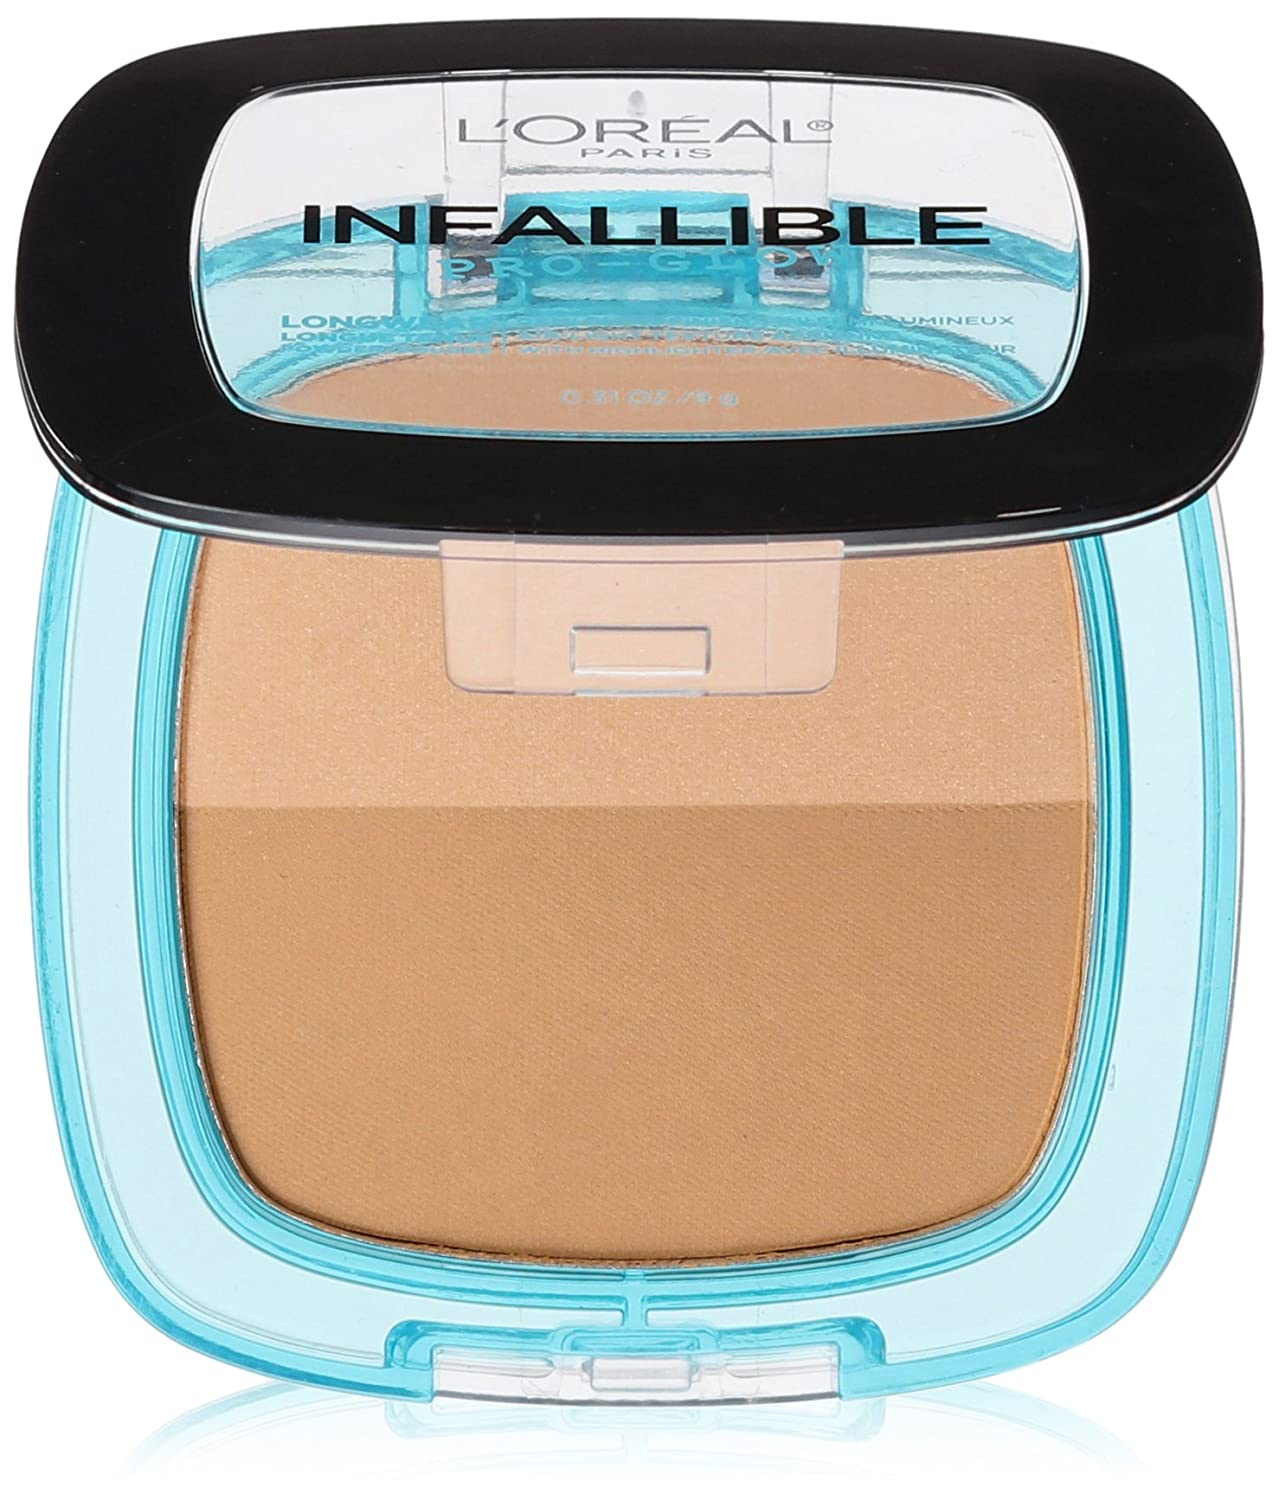 L'Oréal Paris Infallible Pro Glow Pressed Powder, Creme Cafe, 0.31 oz.